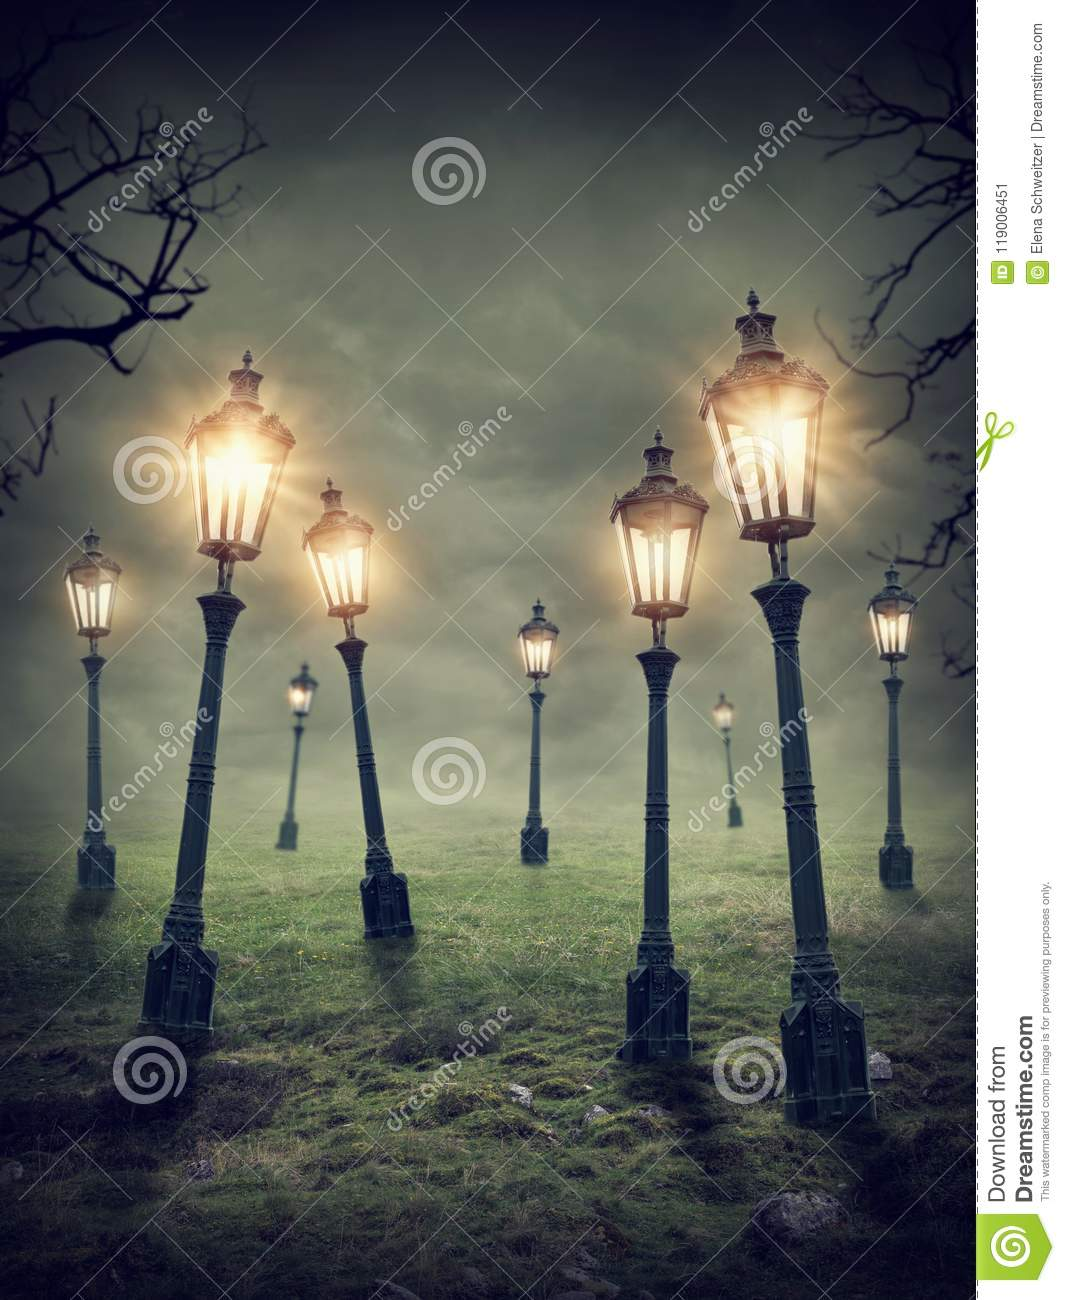 Download Laterns in the meadow stock illustration. Illustration of meadow - 119006451